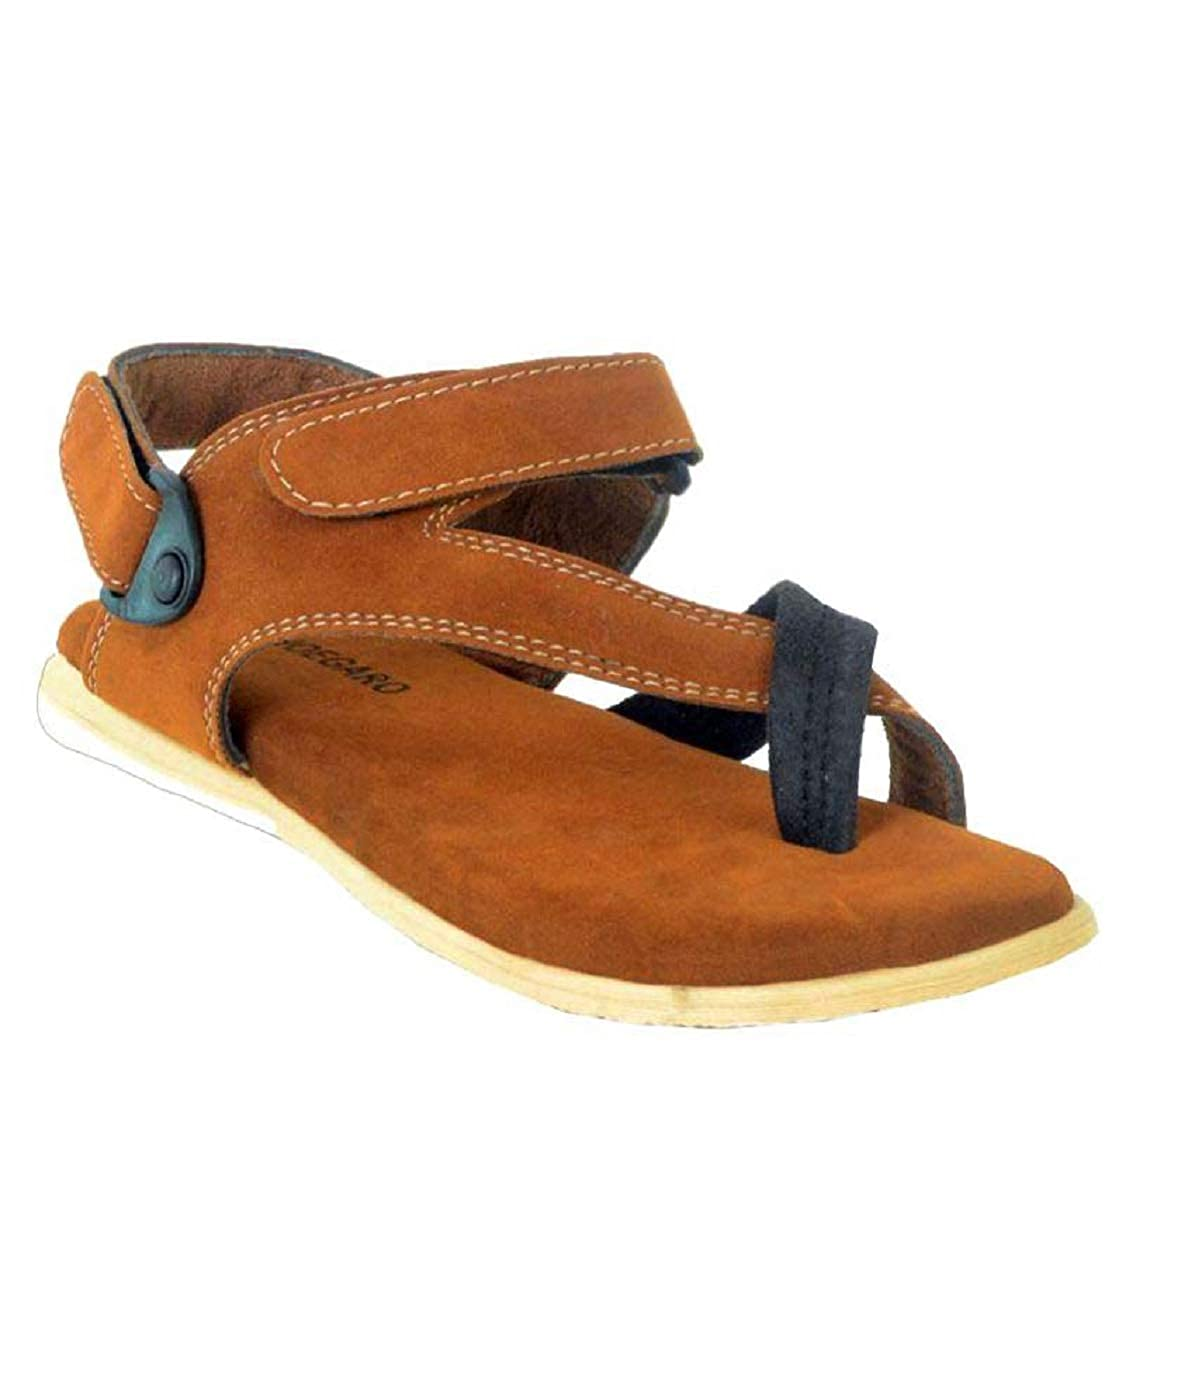 44f03ceae969 Shoegaro Tan Suede Casual Sandals Men  Buy Online at Low Prices in India -  Amazon.in